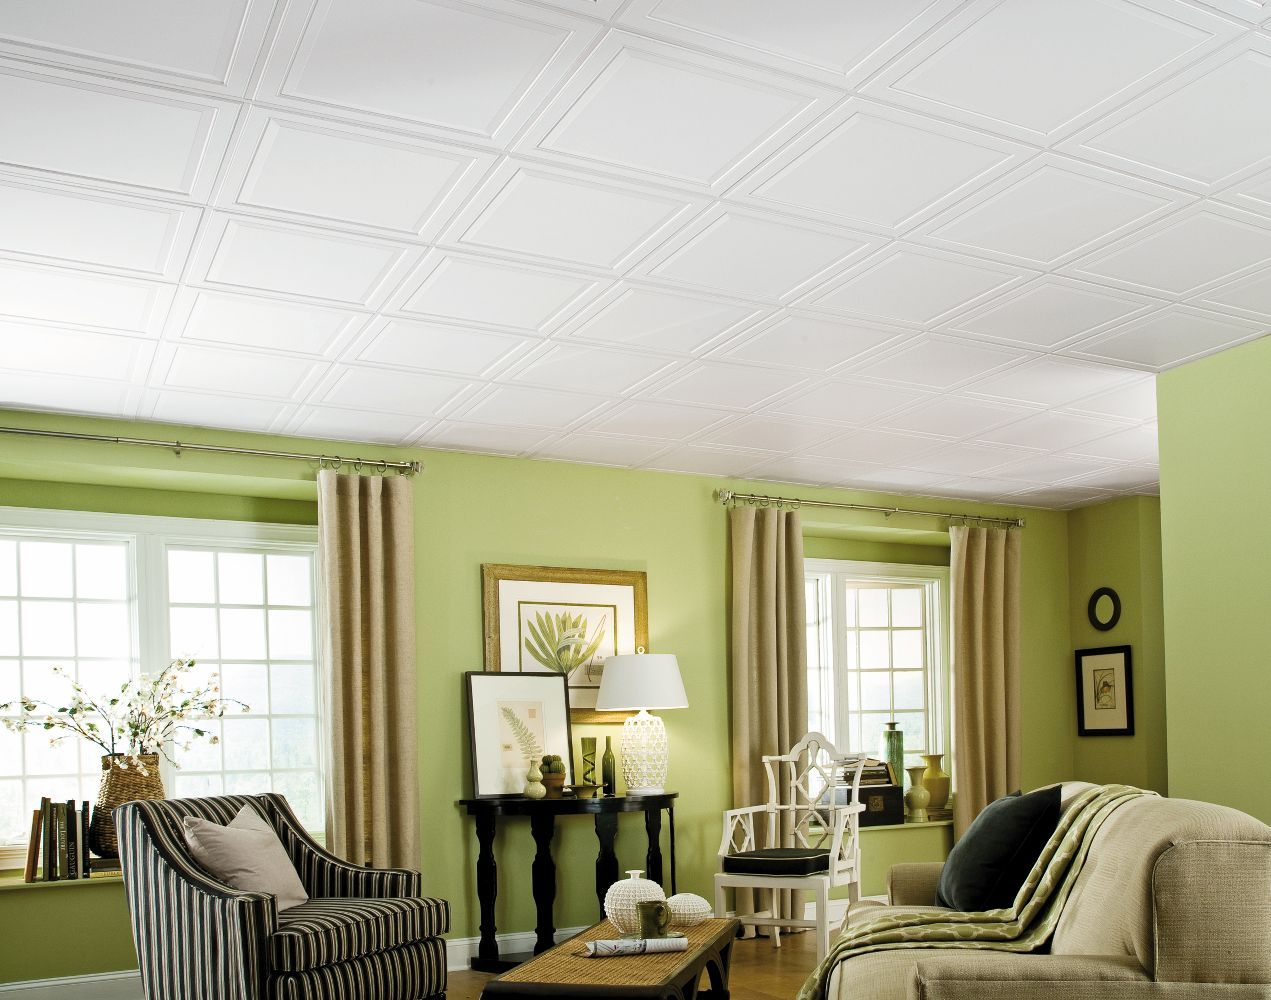 1210, single raised panel is a paintable ceilingsarmstrong